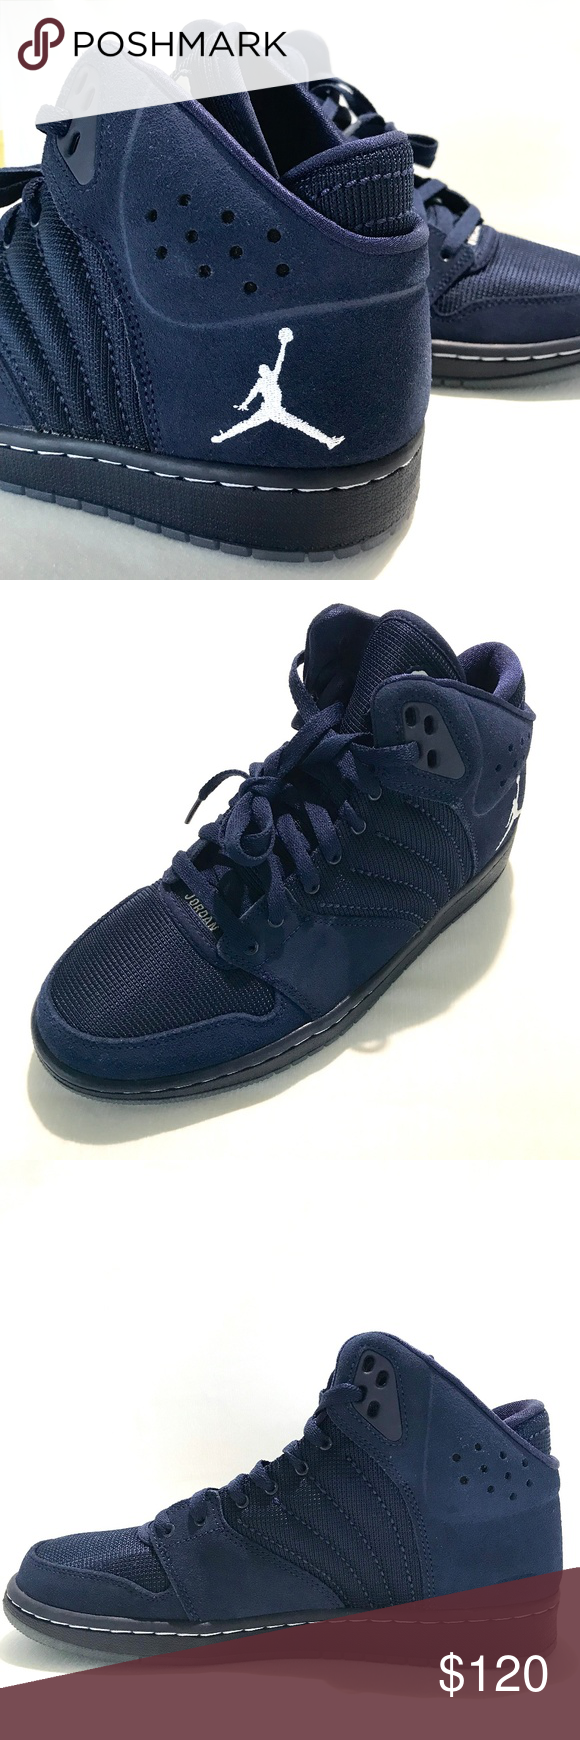 e096ff4d0822d6 Jordan 1 Flight 4 Premium Athletic Shoes Size 8 BRAND NEW NIKE JORDAN 1  FLIGHT 4 PREMIUM MEN S ATHLETIC Suede SHOES NAVY BLUE SIZE 8 Jordan Shoes  Athletic ...